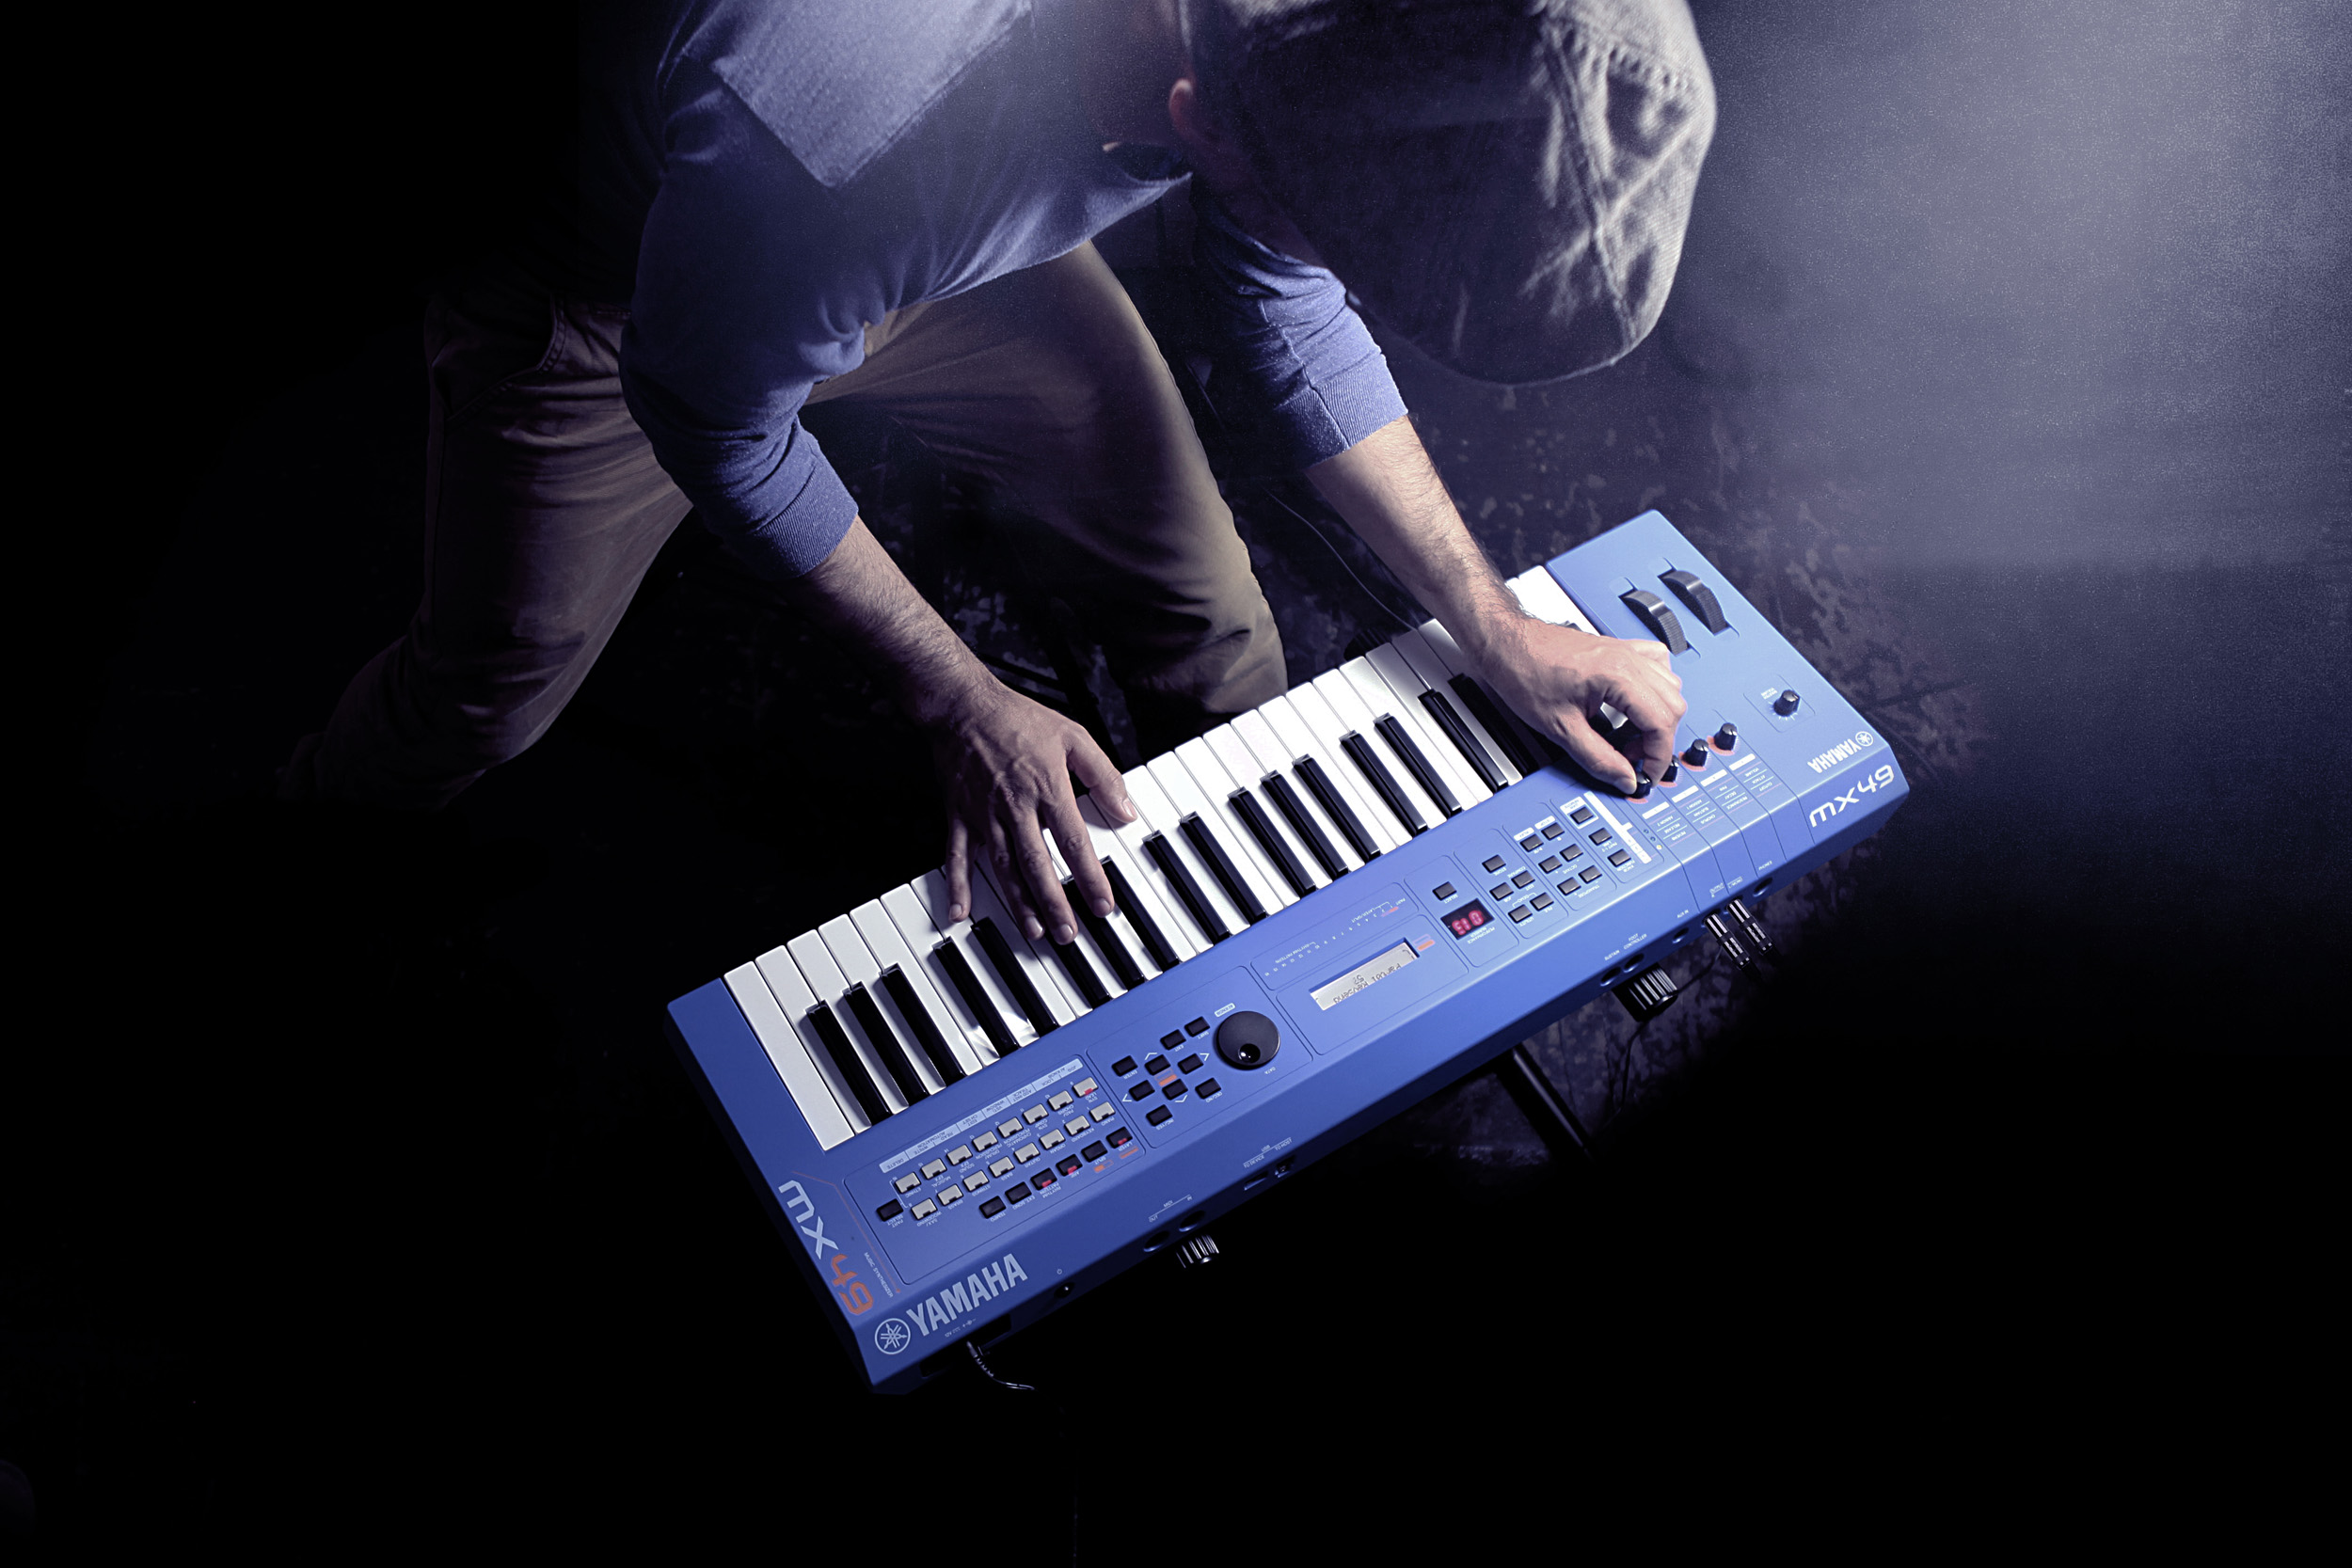 MX49 Version 2 Synthesizer 49 Key Edition, In Blue Finish